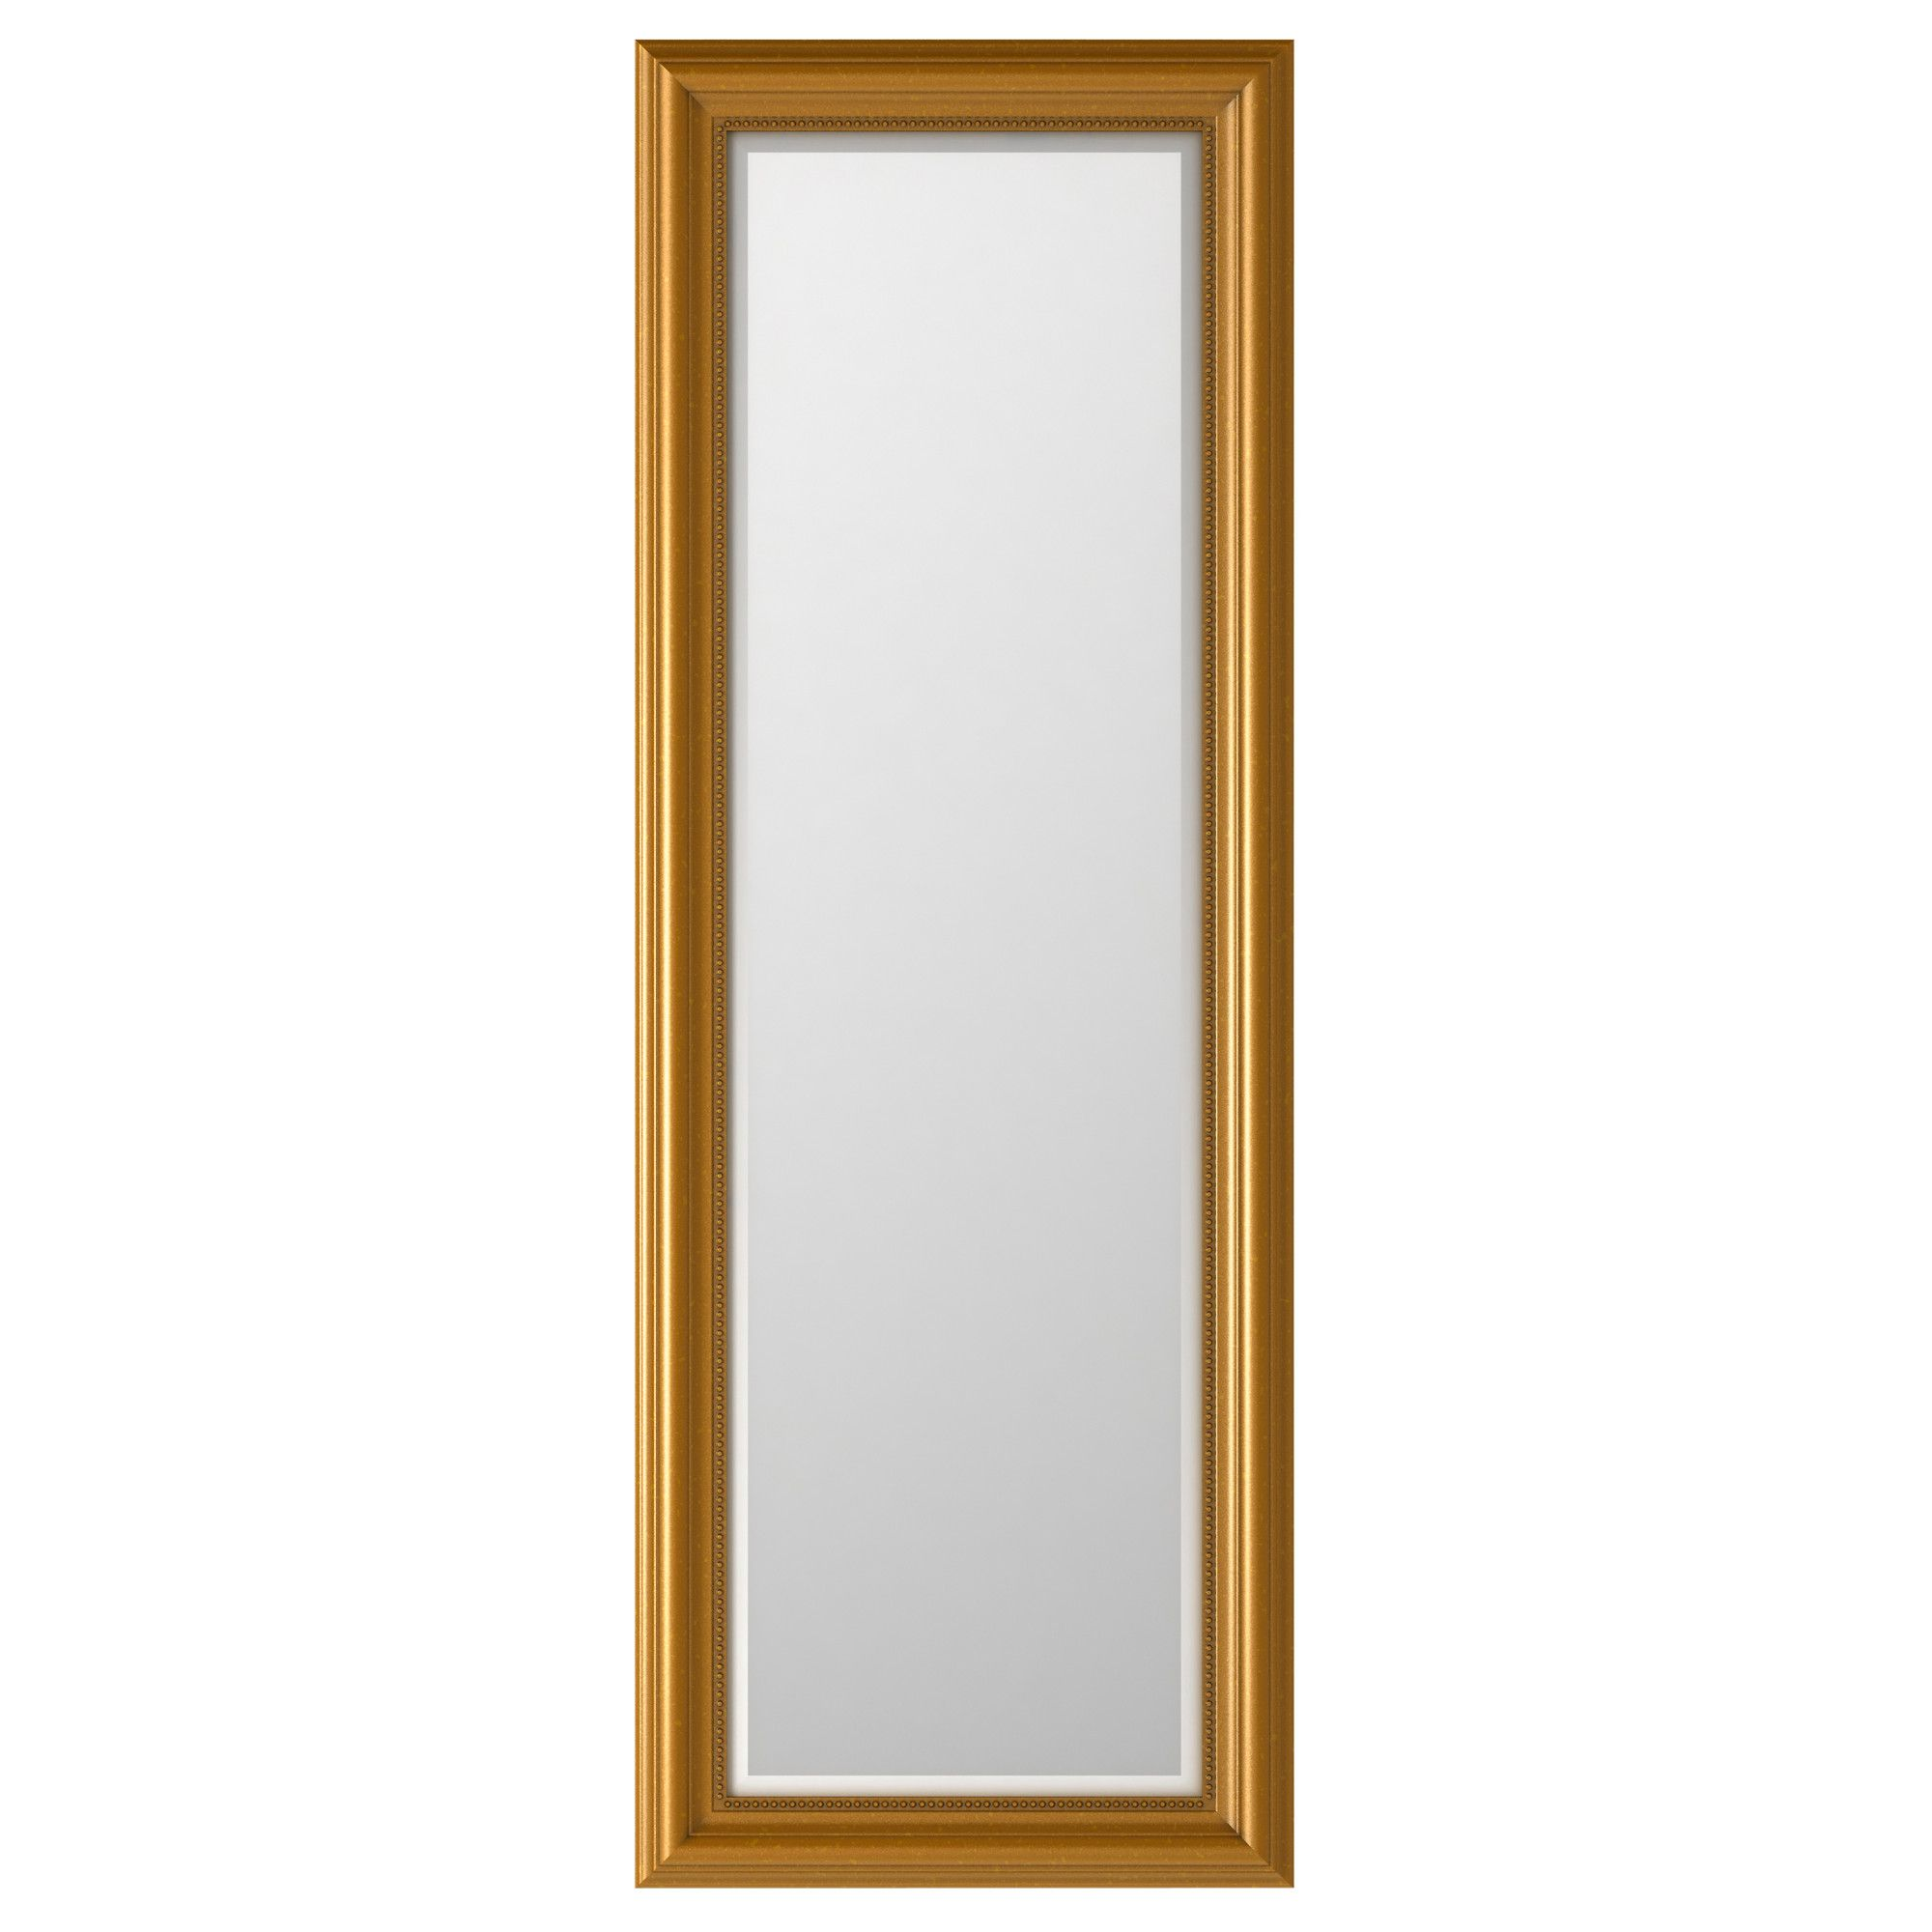 Ikea Us Furniture And Home Furnishings Wall Mirrors Ikea Ikea Mirror Modern Mirror Wall